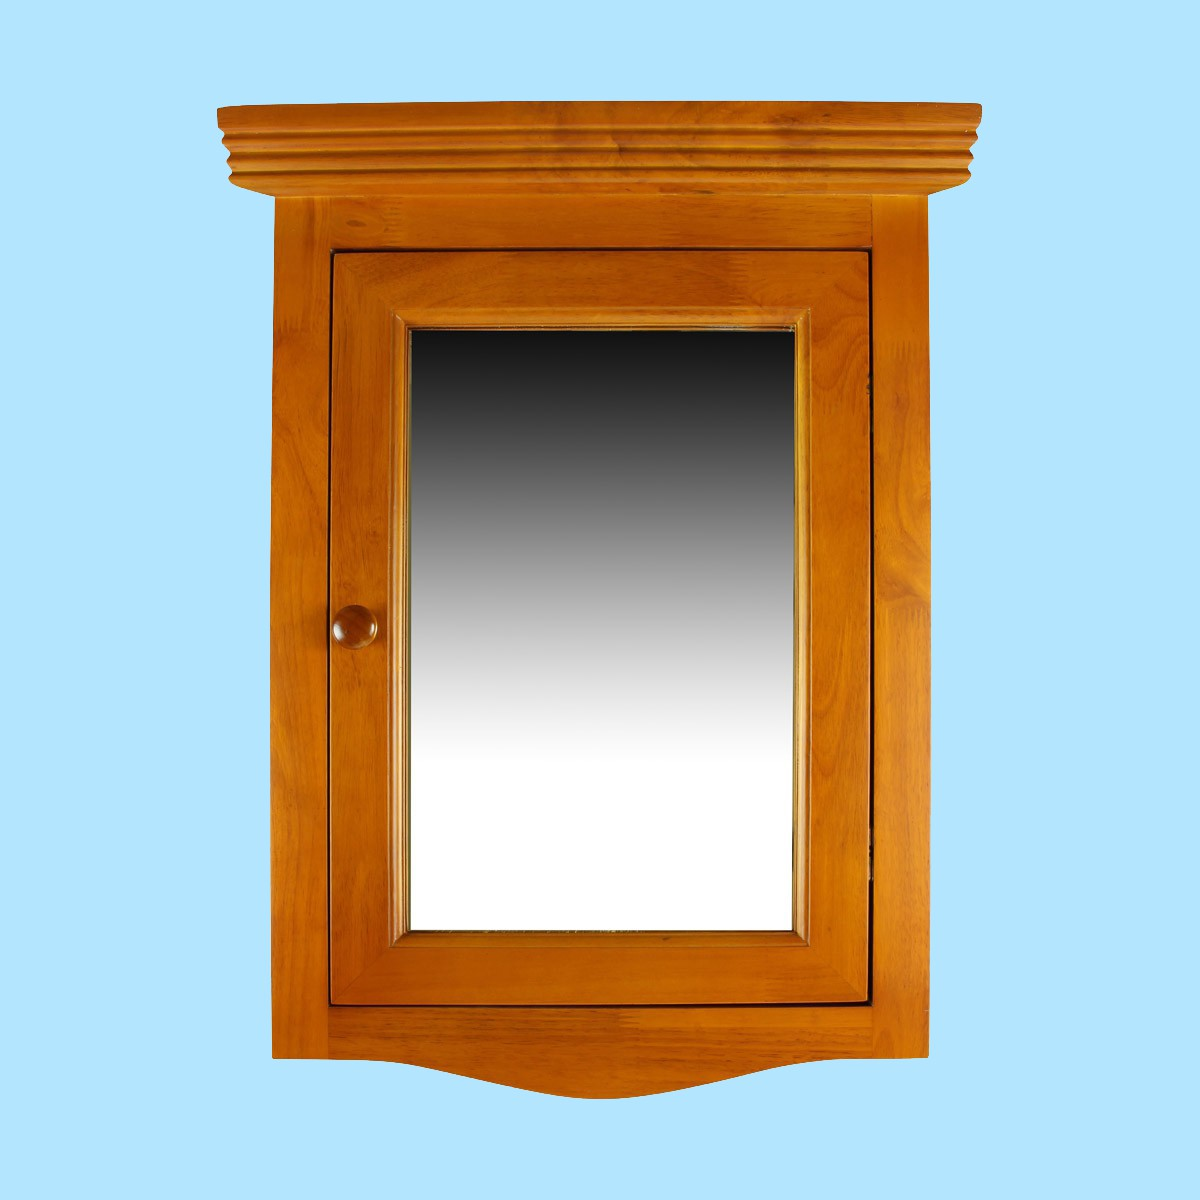 solid wood corner medicine cabinet mirror door golden oak